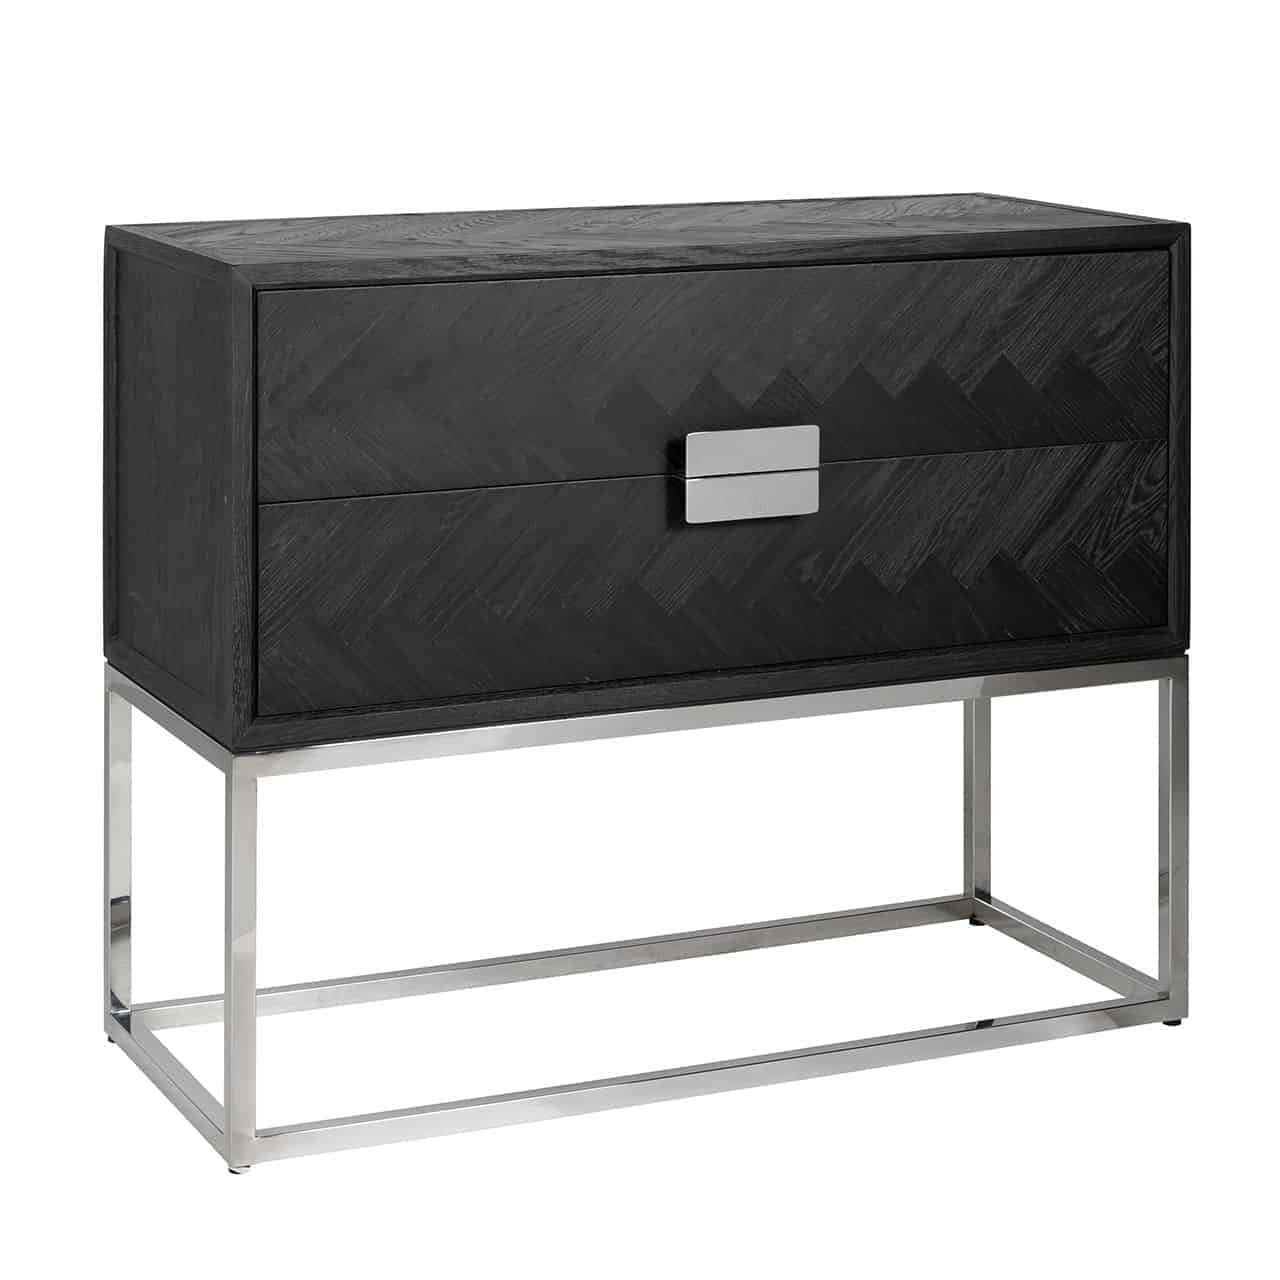 Dresser Blackbone Silver 2 Drawers